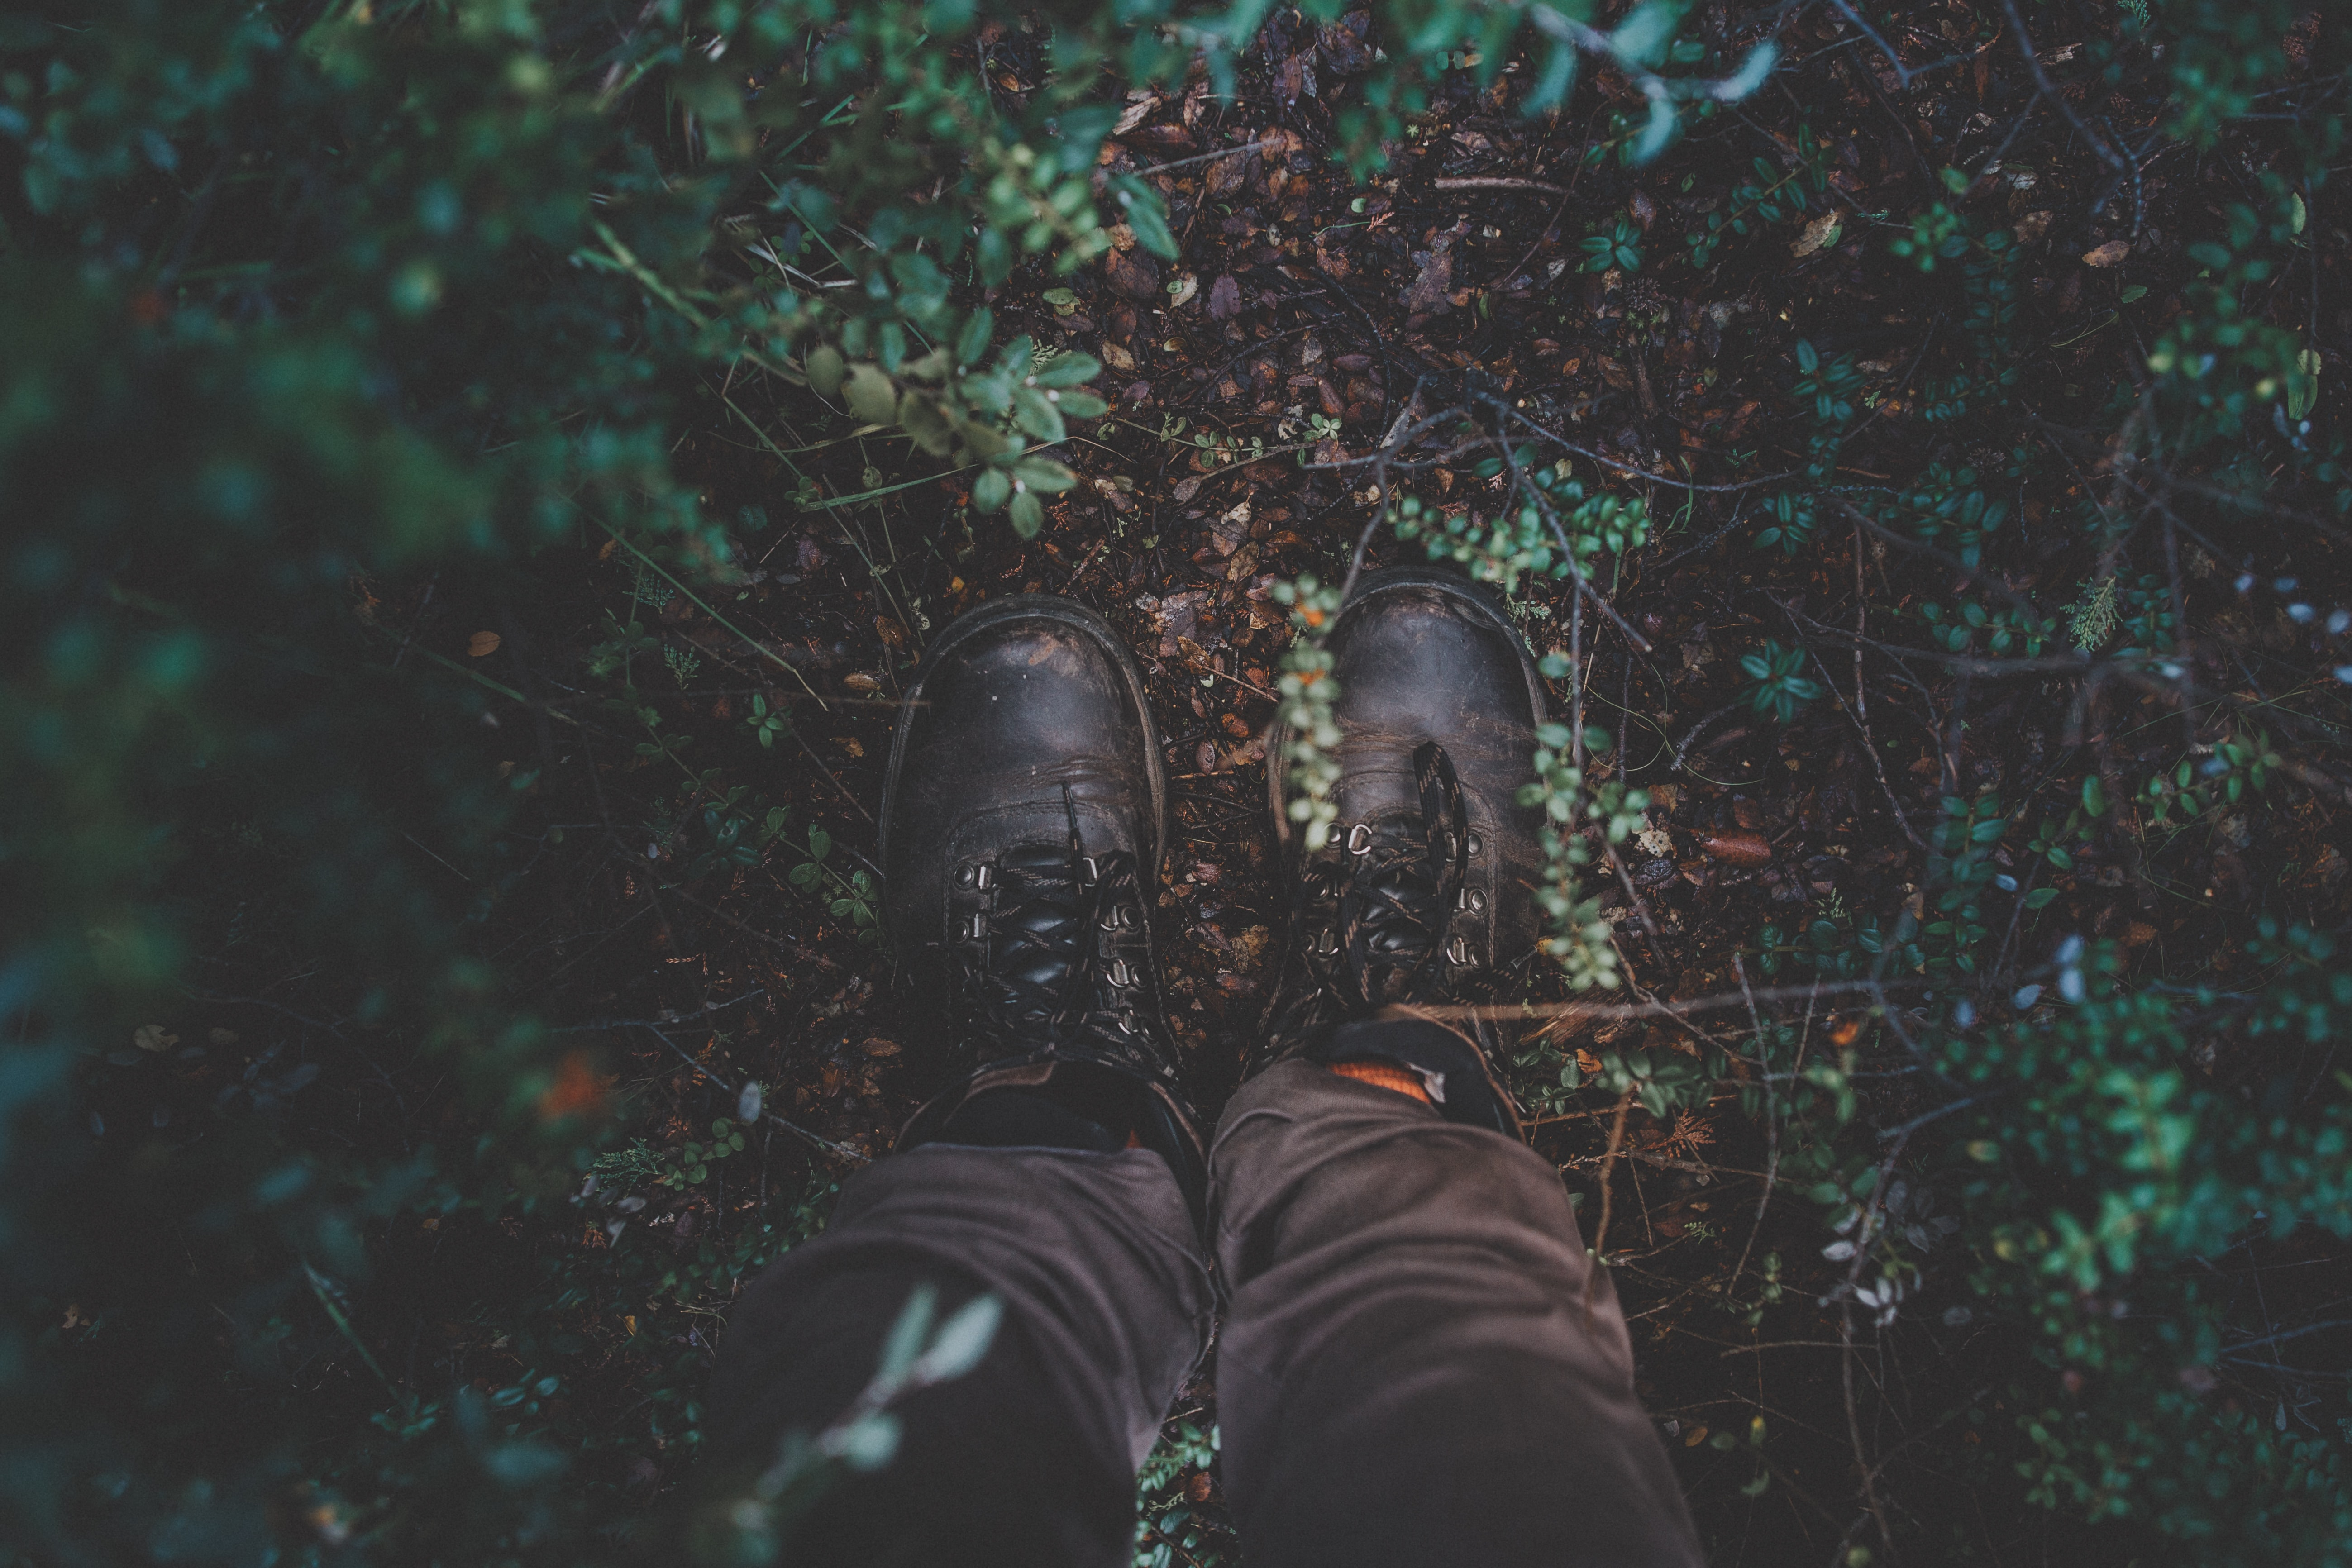 photography of black shoes surrounded by green leaves